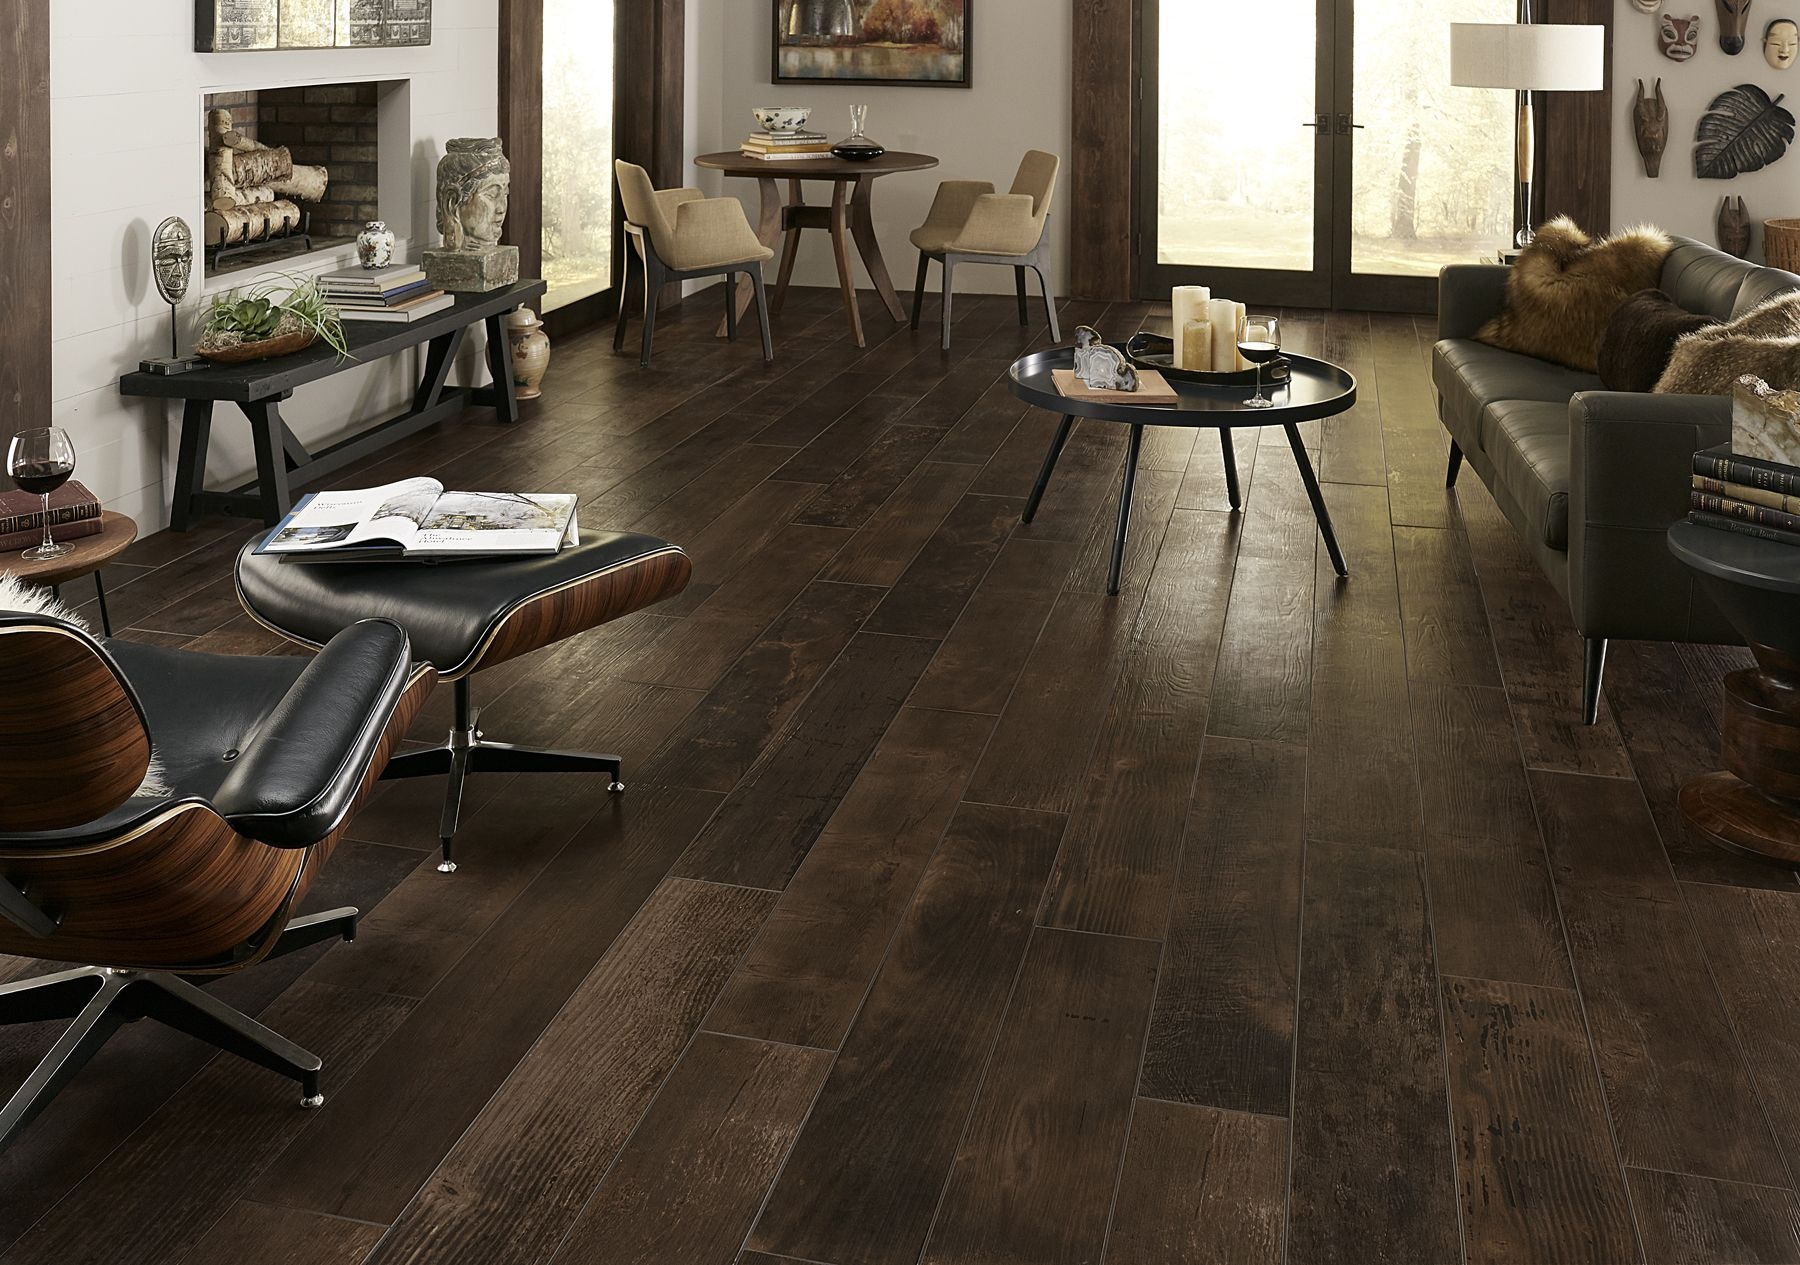 Avella Smoked Whiskey Oak Porcelain Tile